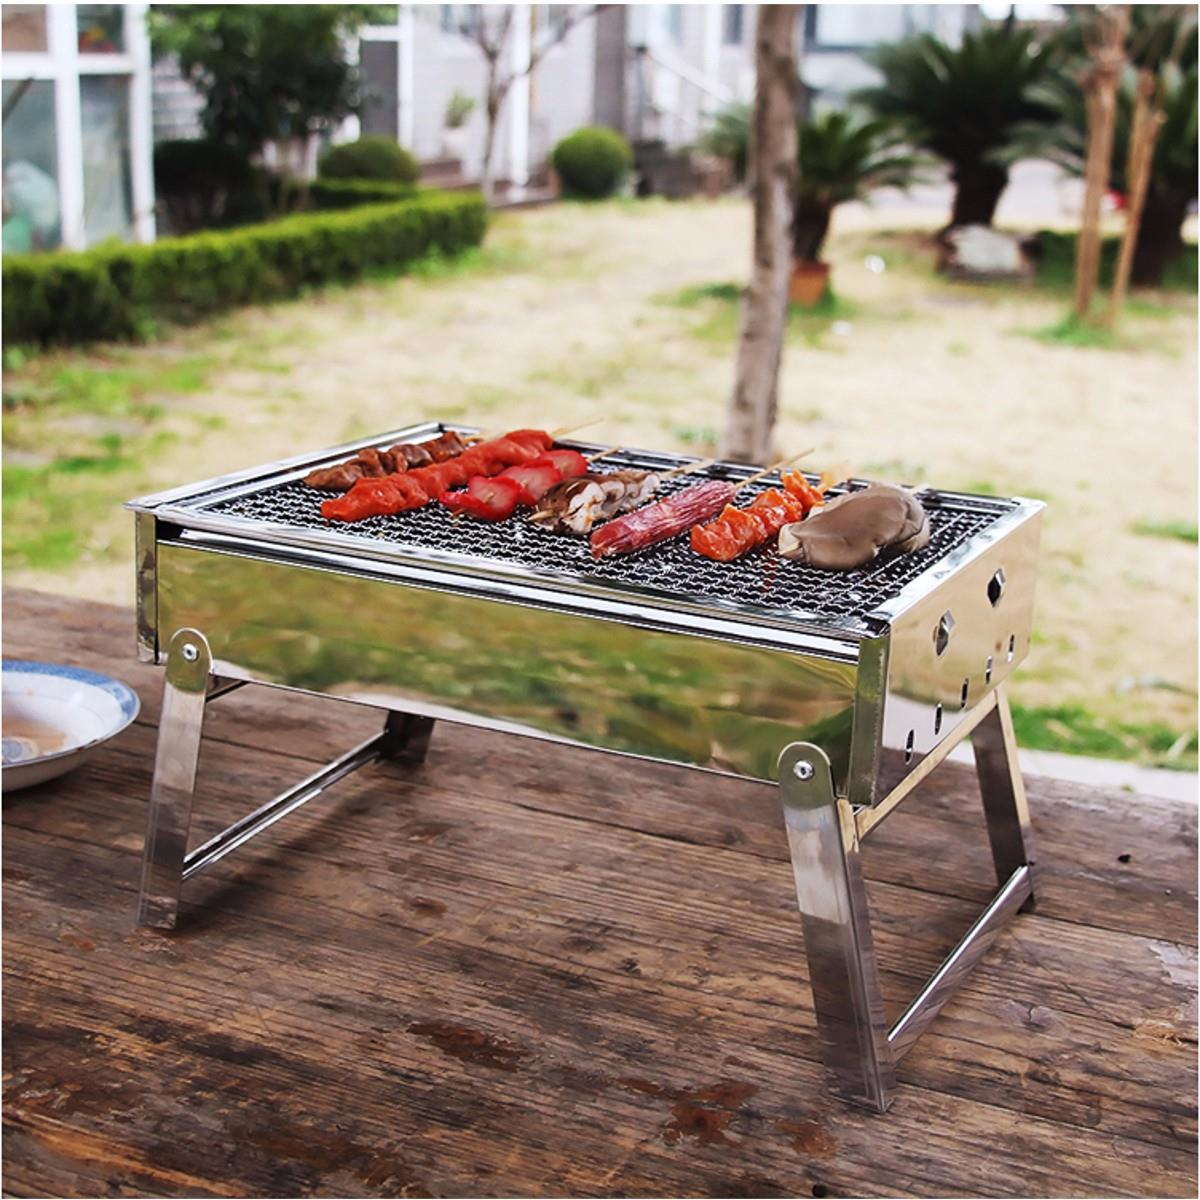 portable grill rack stainless steel stove pan outdoor. Black Bedroom Furniture Sets. Home Design Ideas